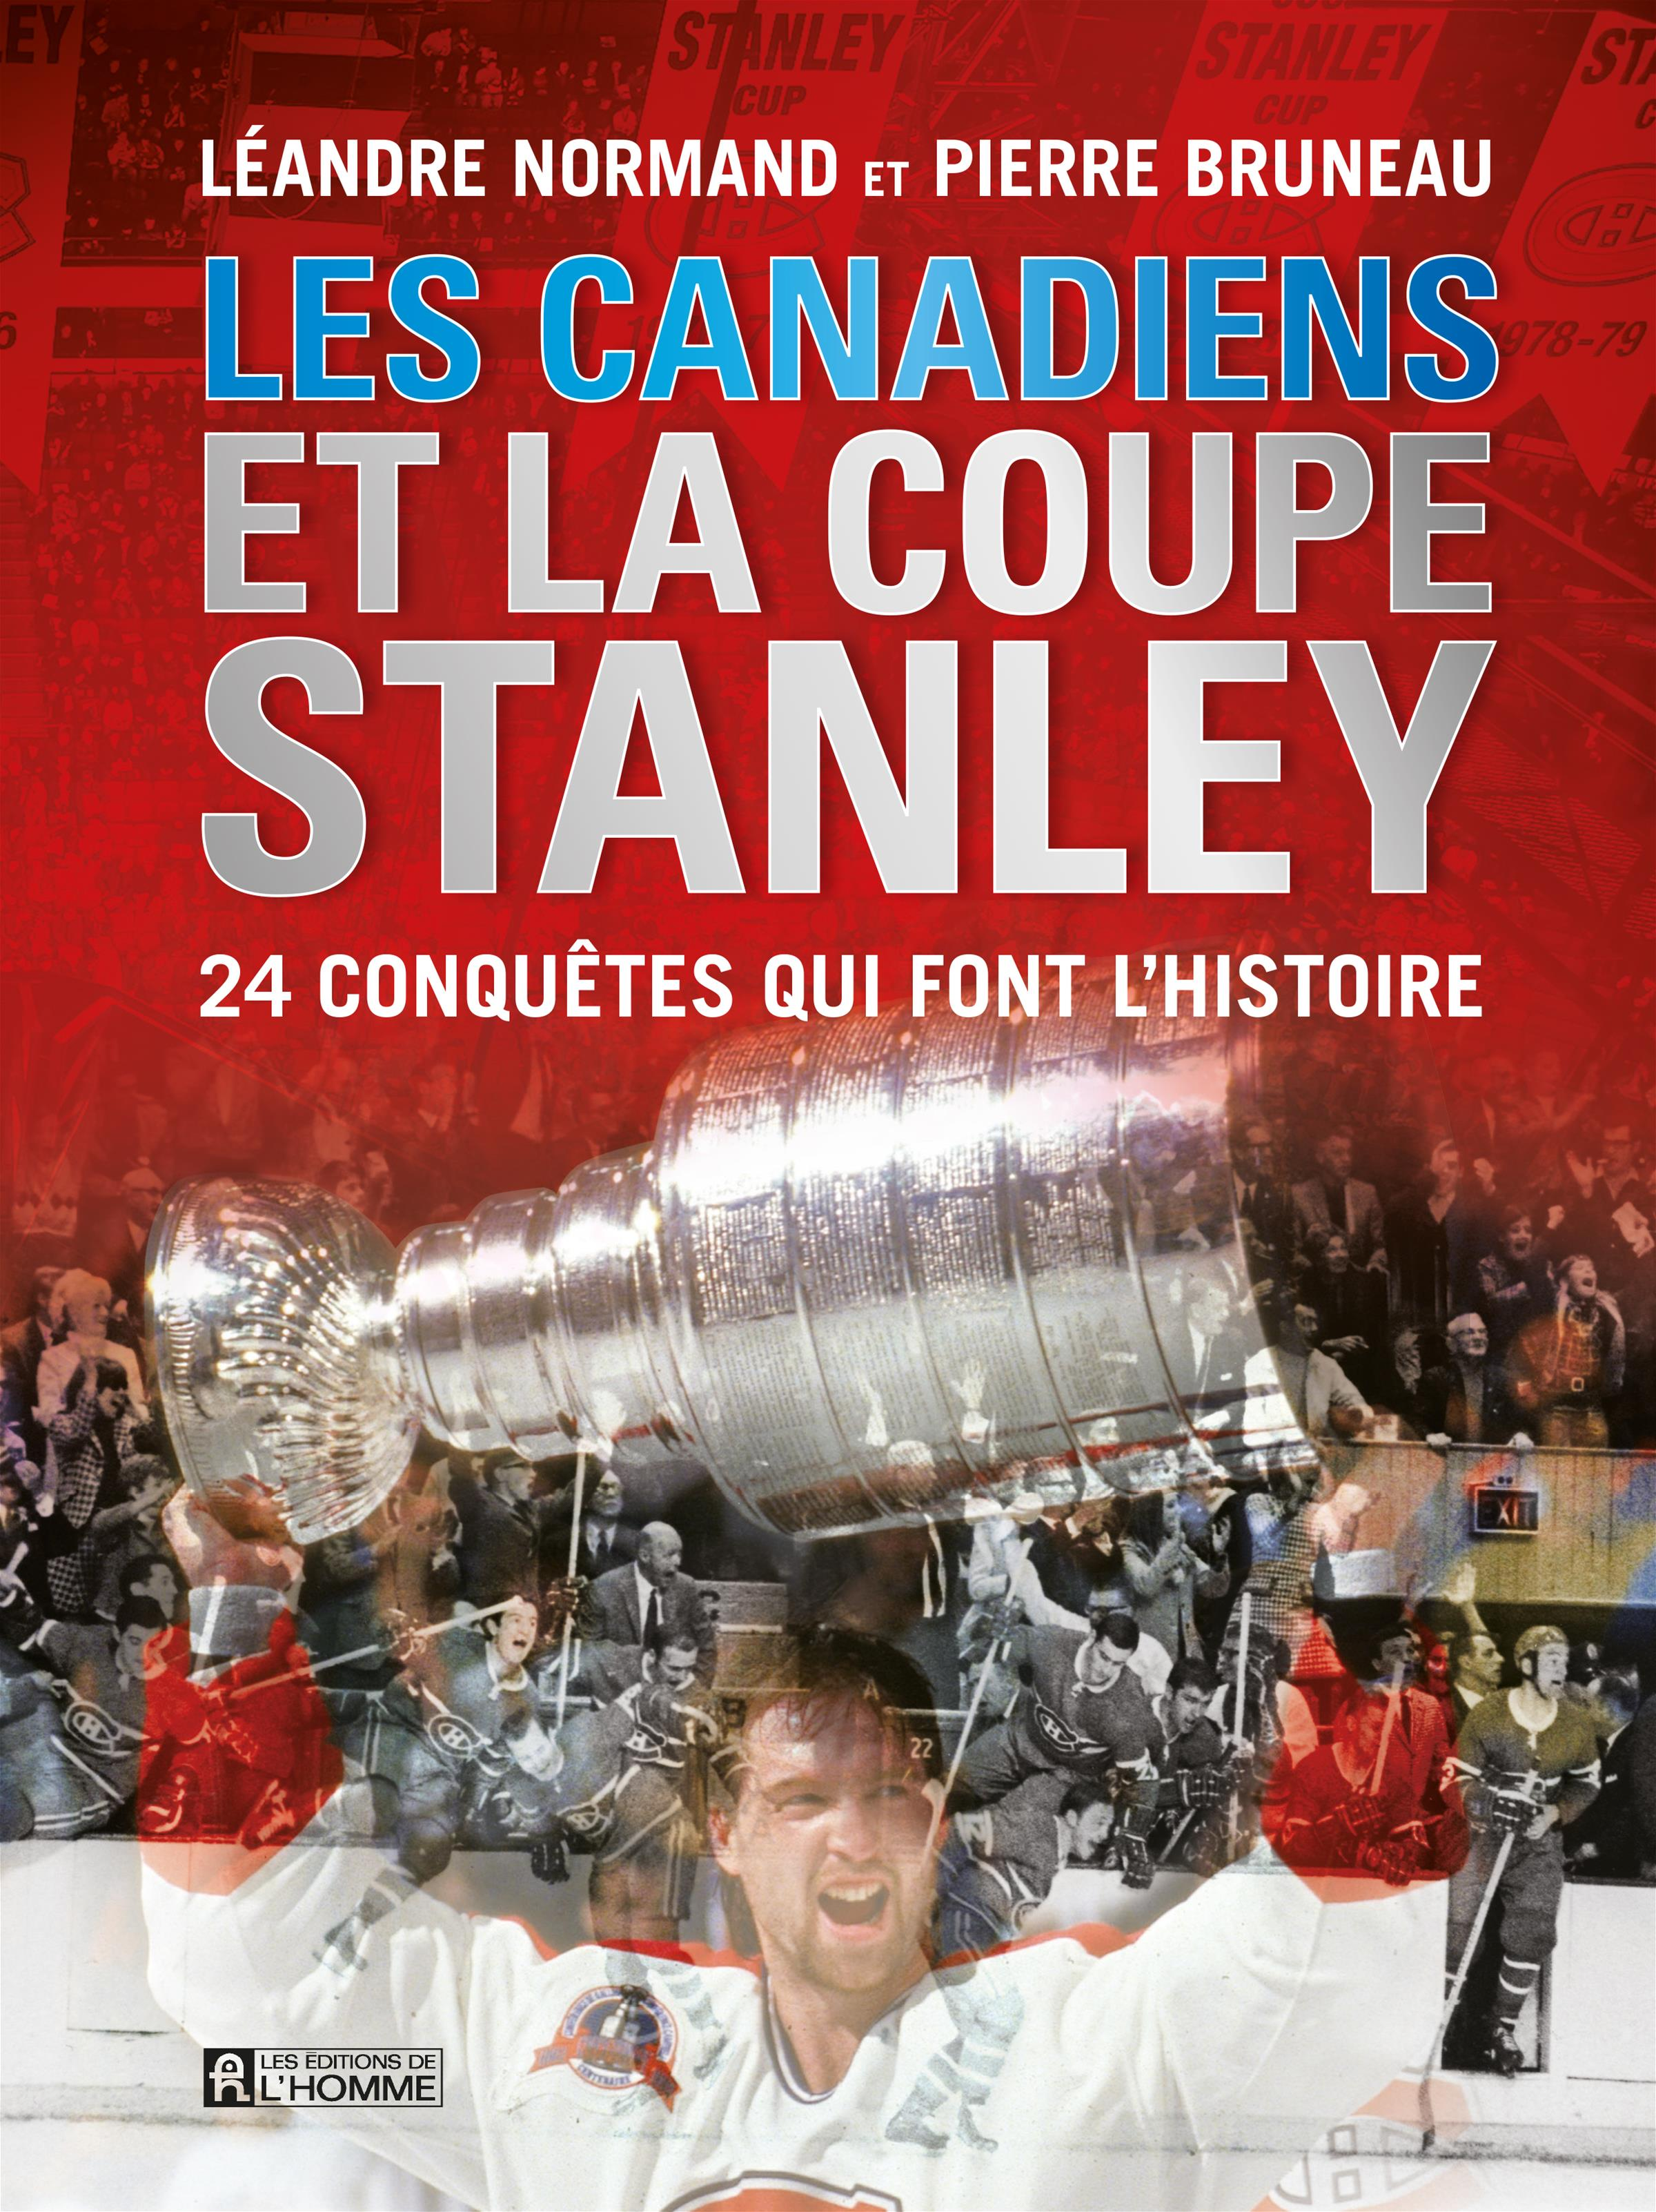 Canadiens et la coupe Stanley